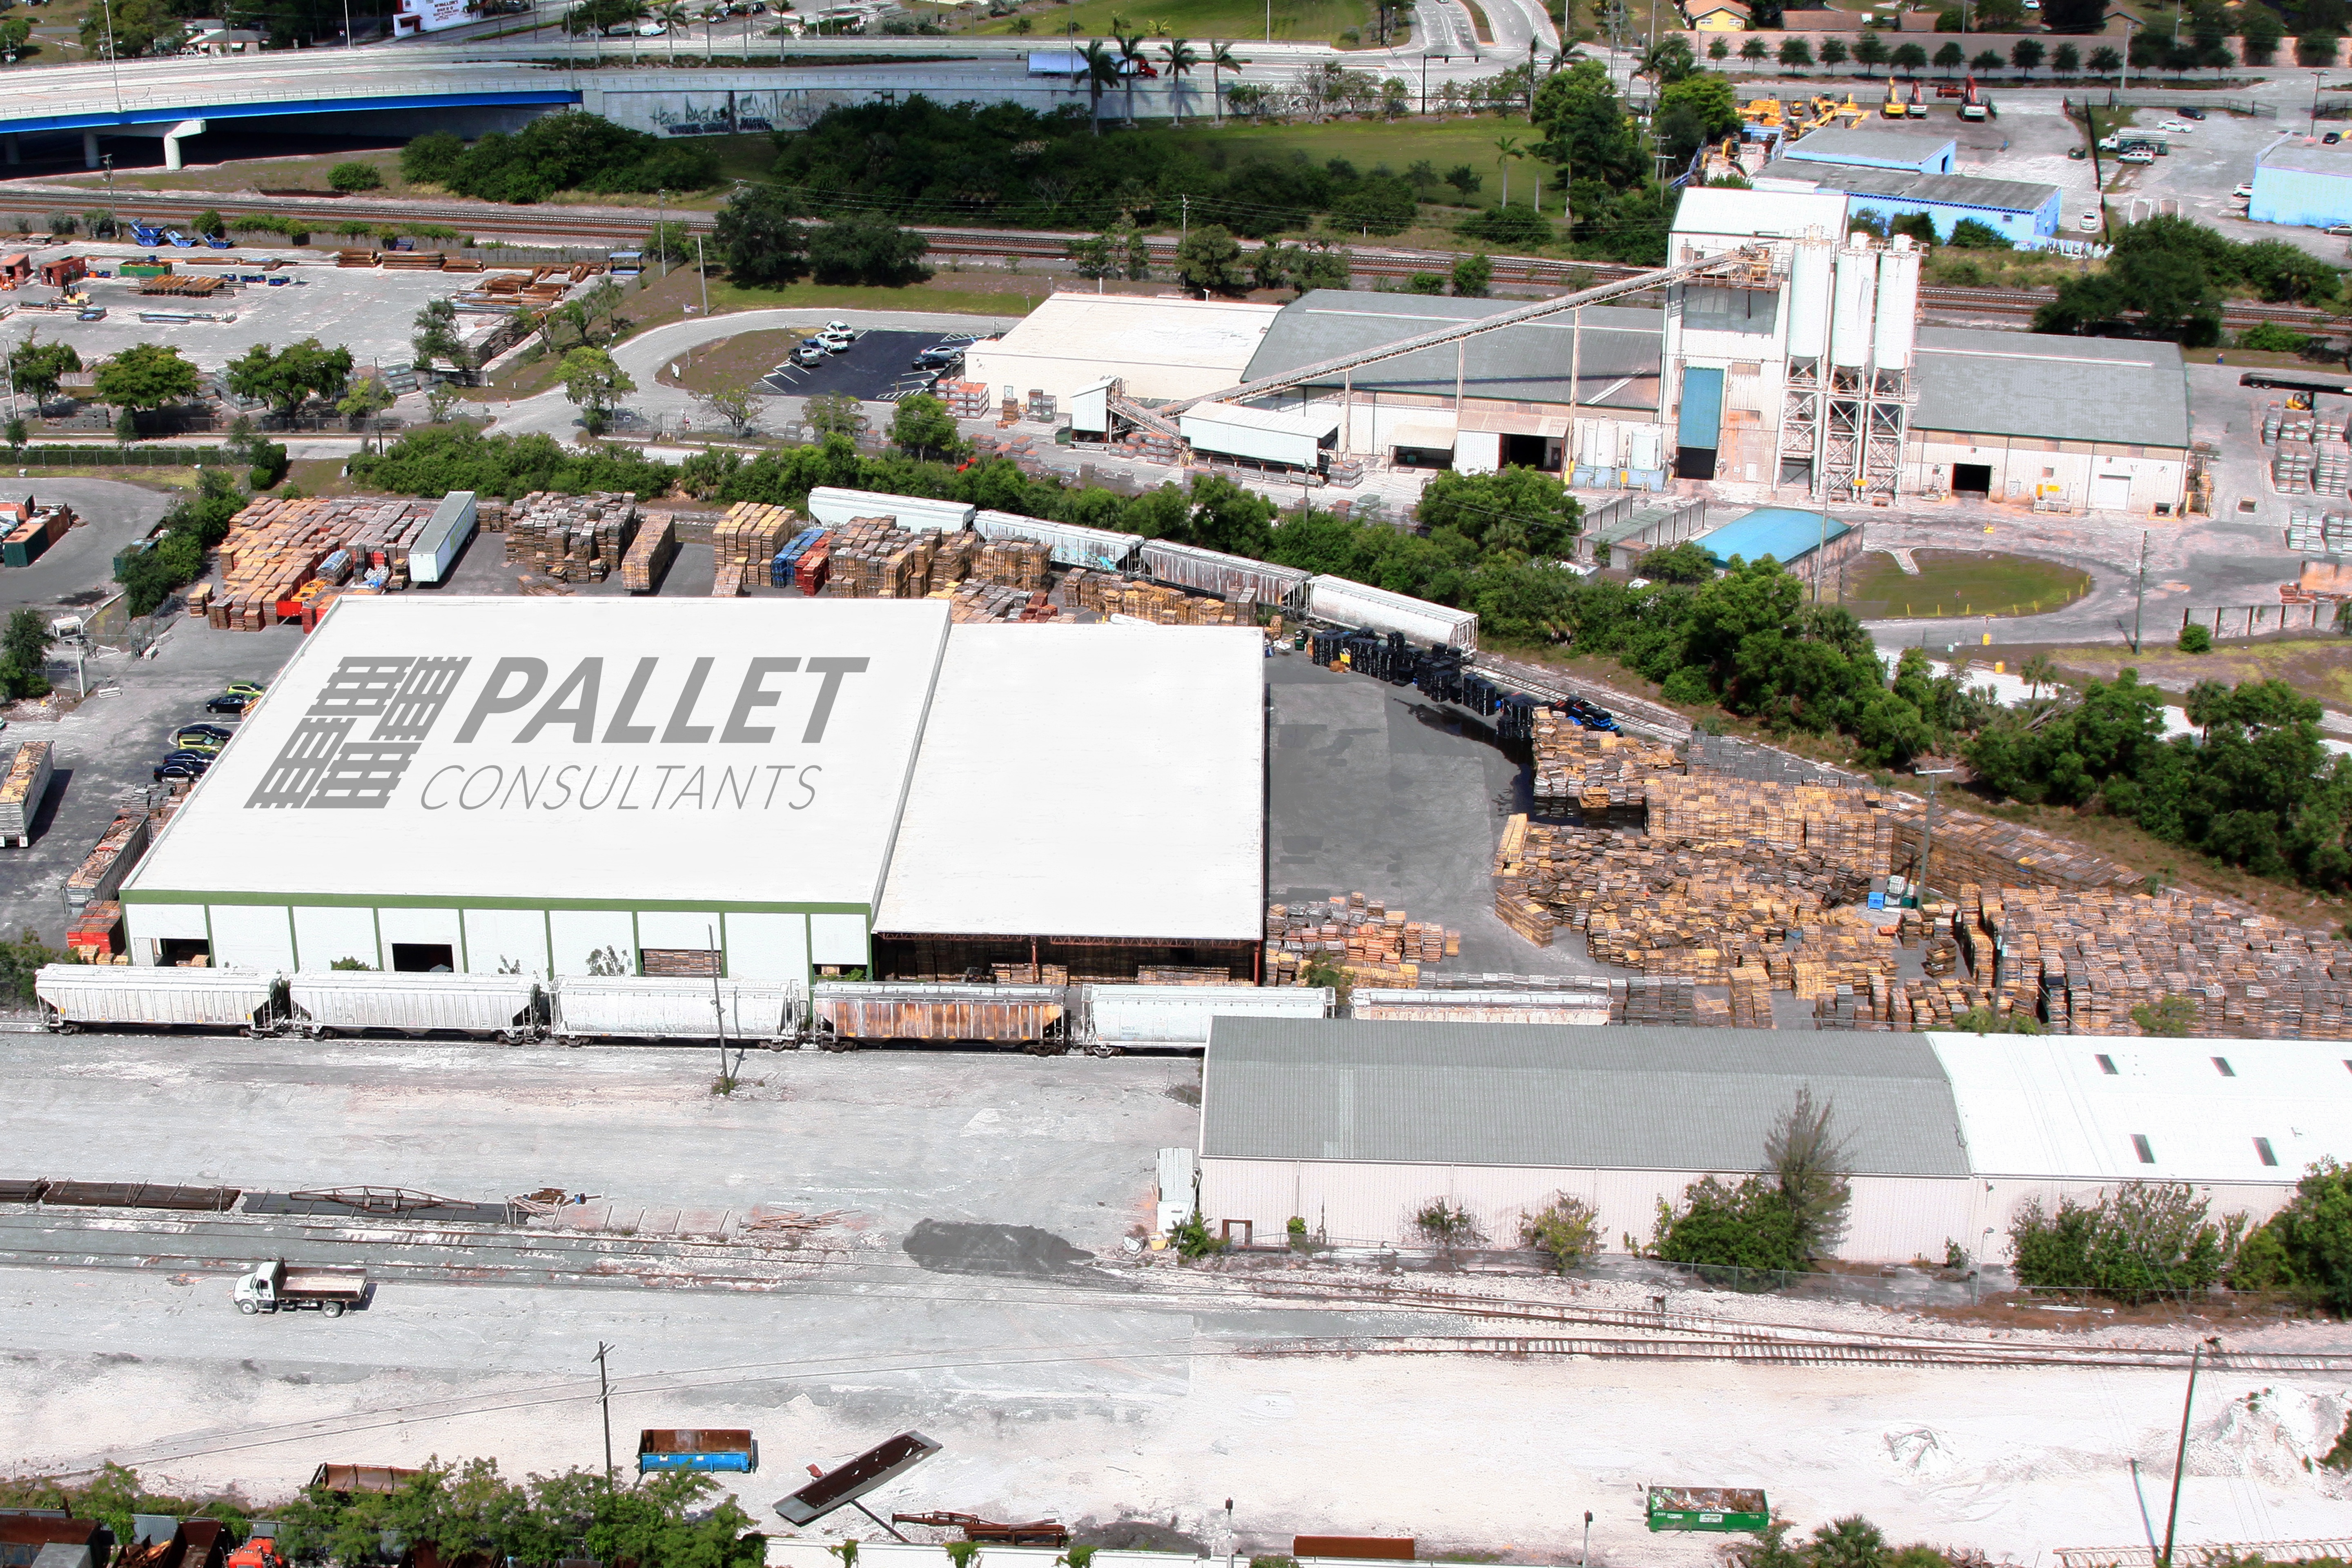 Pallets in Pompano Beach